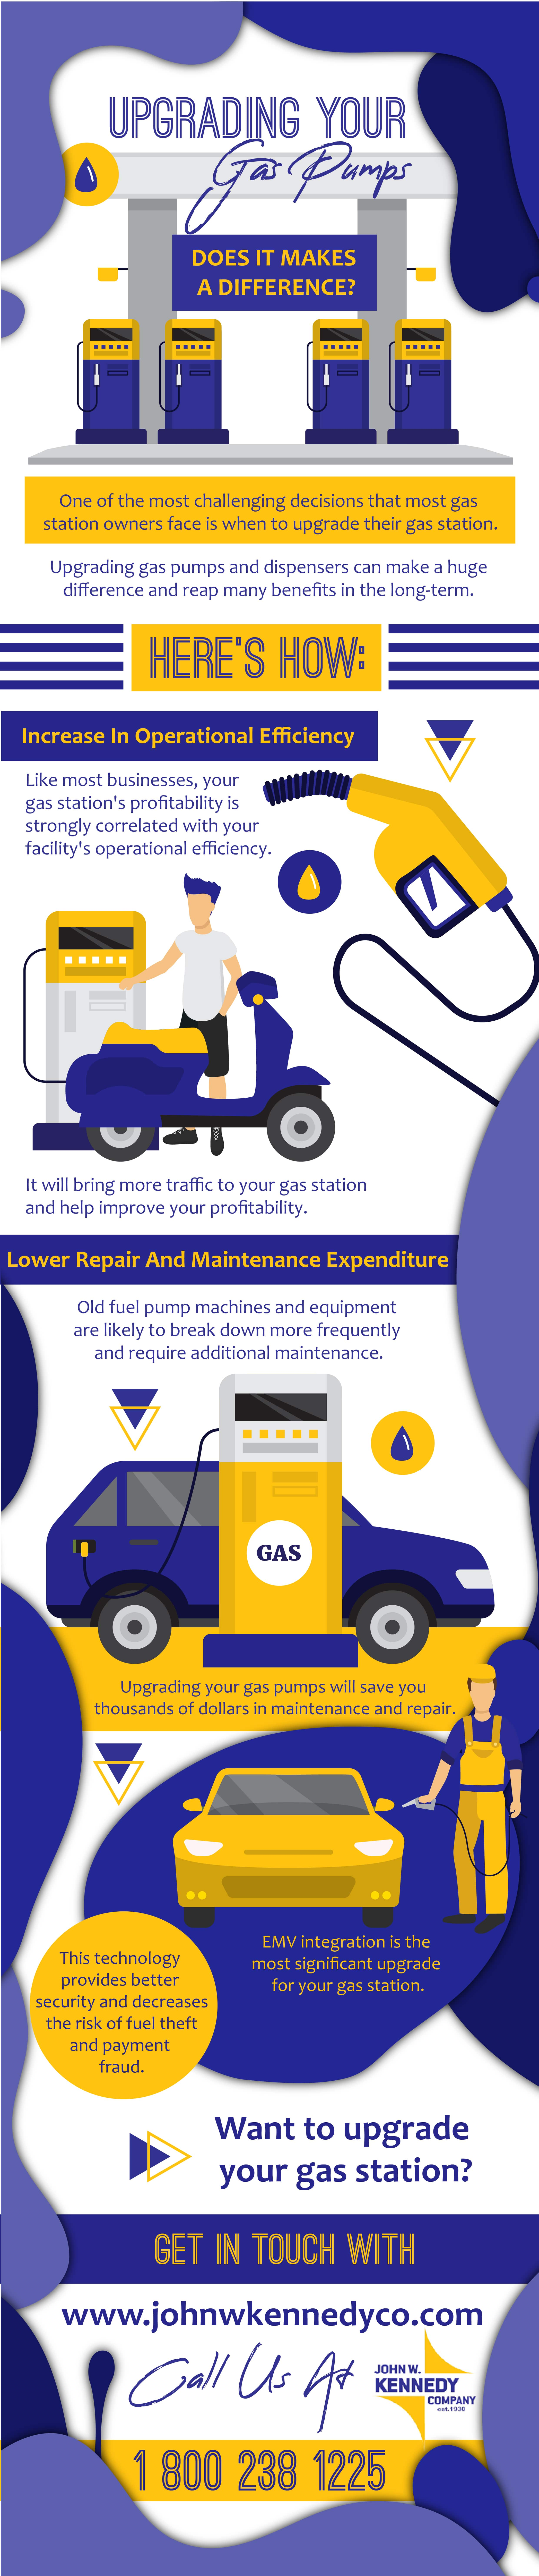 Upgrading-your-gas-pumps-min